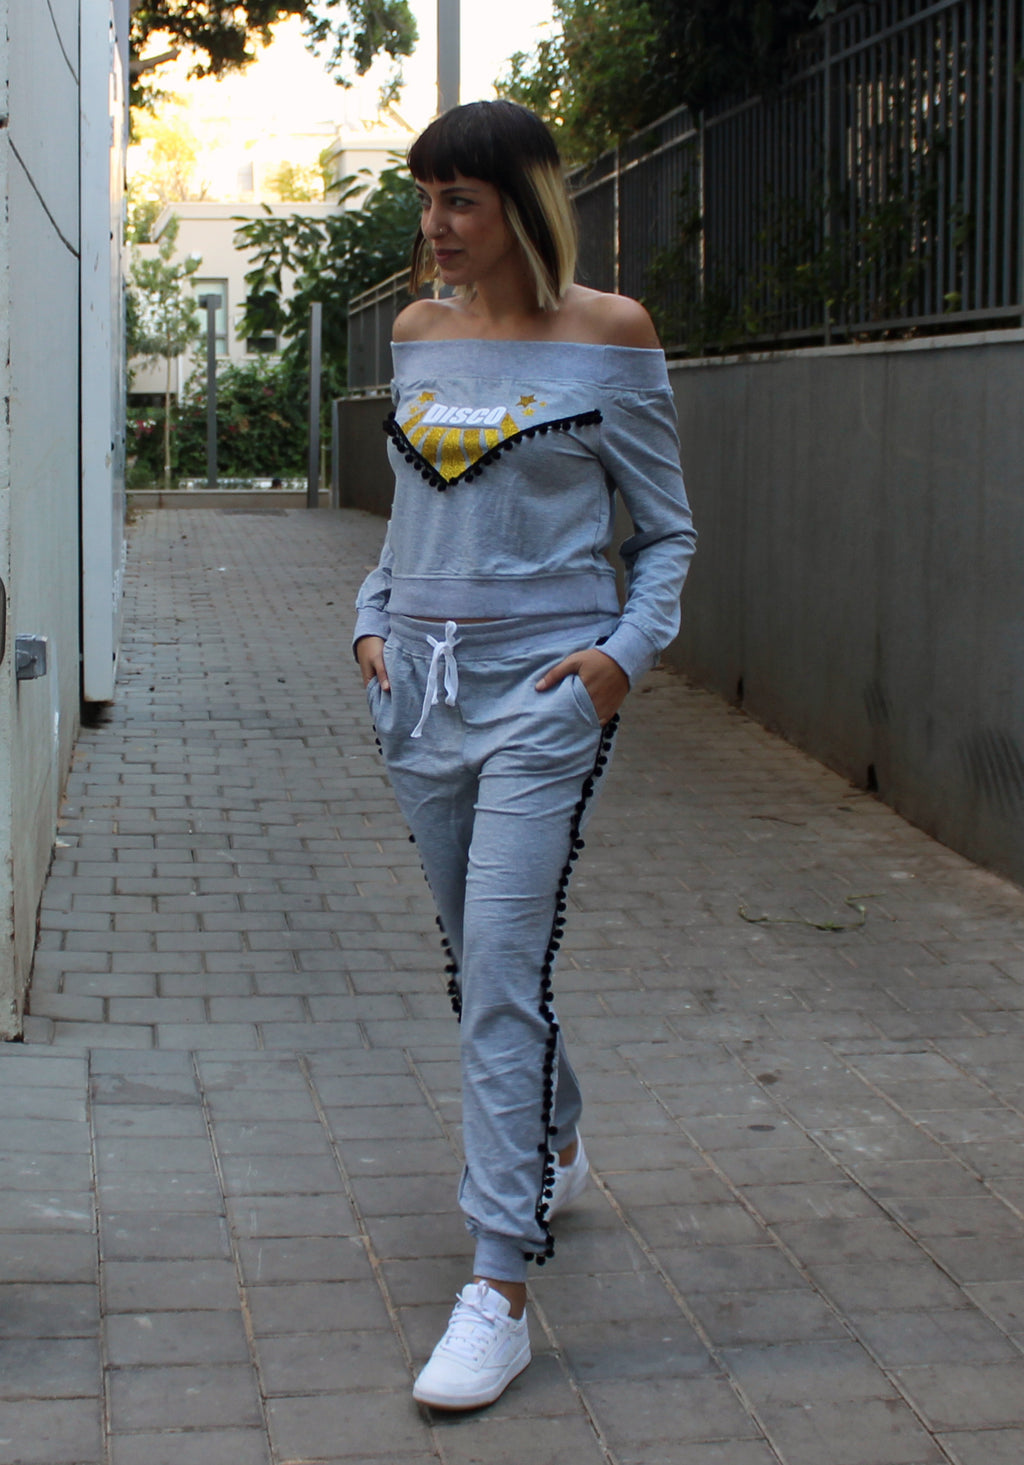 Gray Disco Fever Sweatshirt -סווטשירט דיסקו פיבר אפור